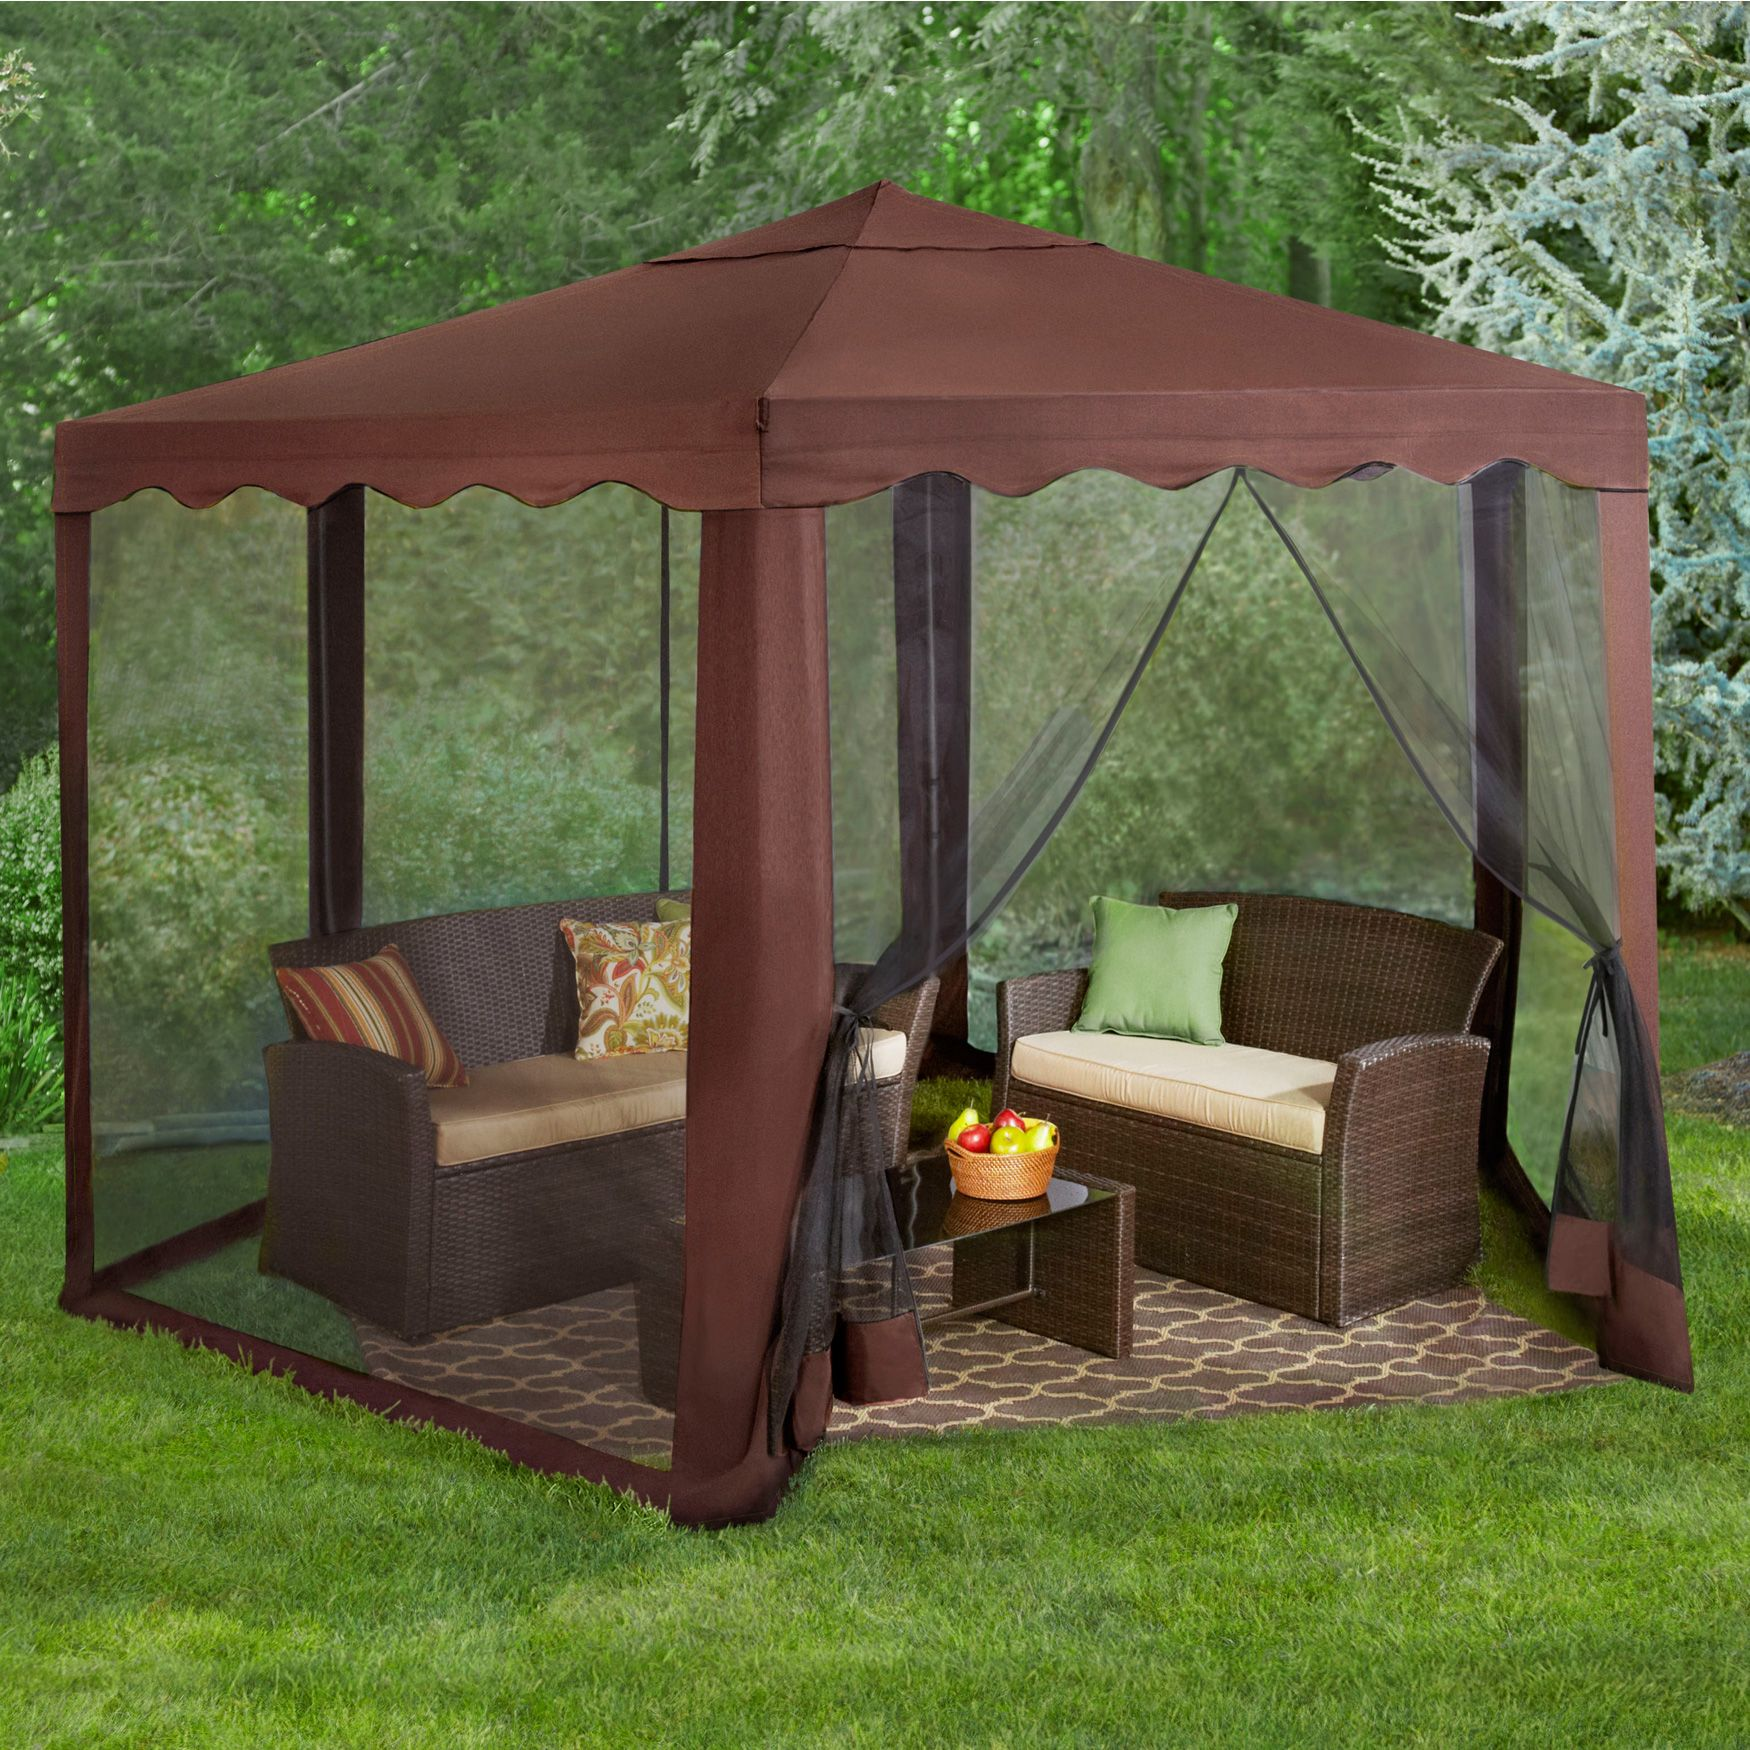 New And Improved Waterproof 13 W Hexagon Gazebo Outdoor Patio